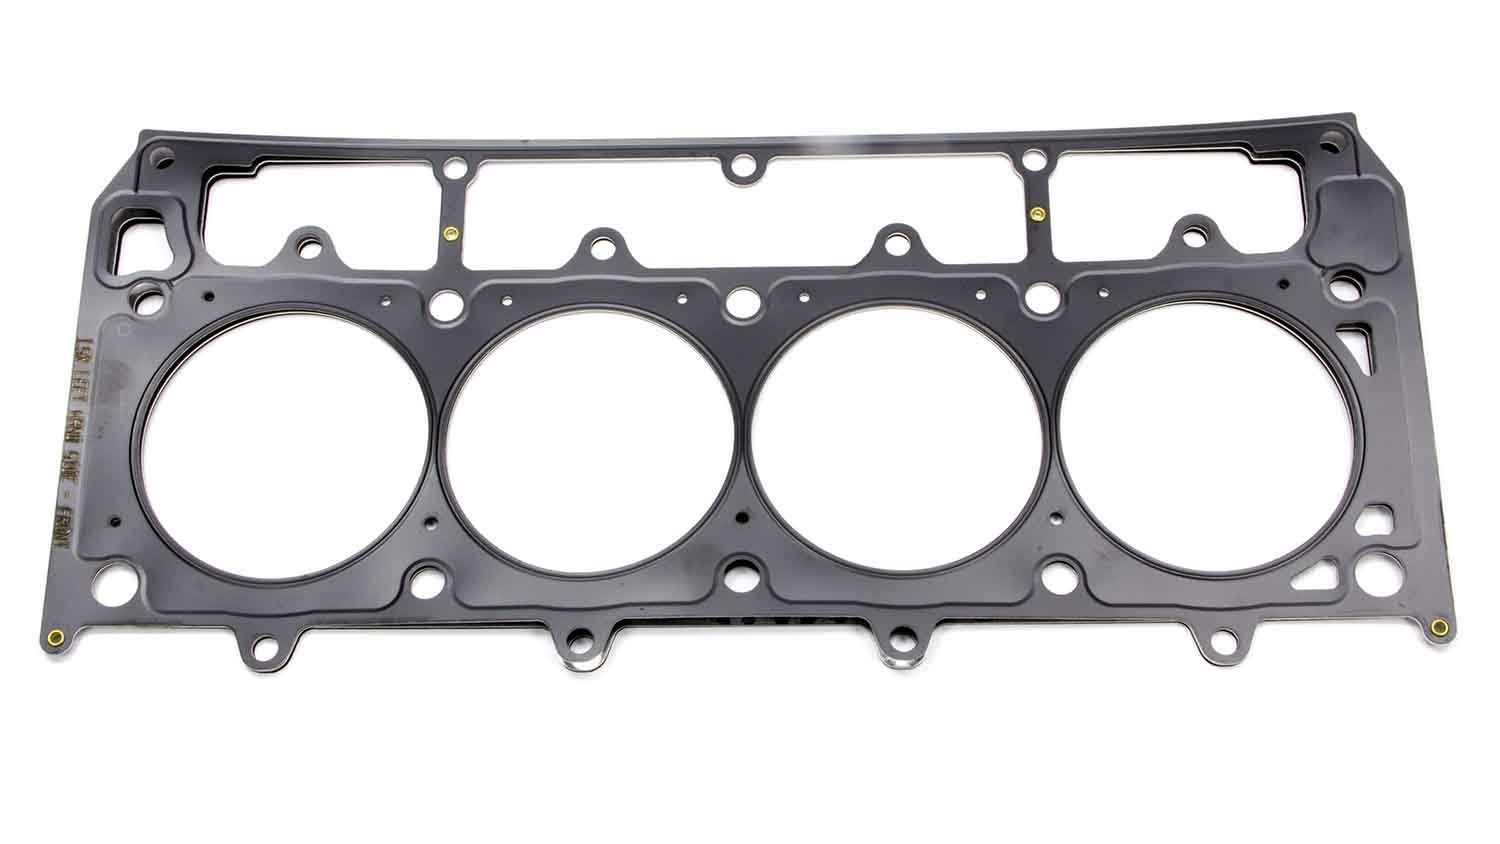 Cometic C5936-051 4.185 Bore x 0.051 Thick MLS Head Gasket